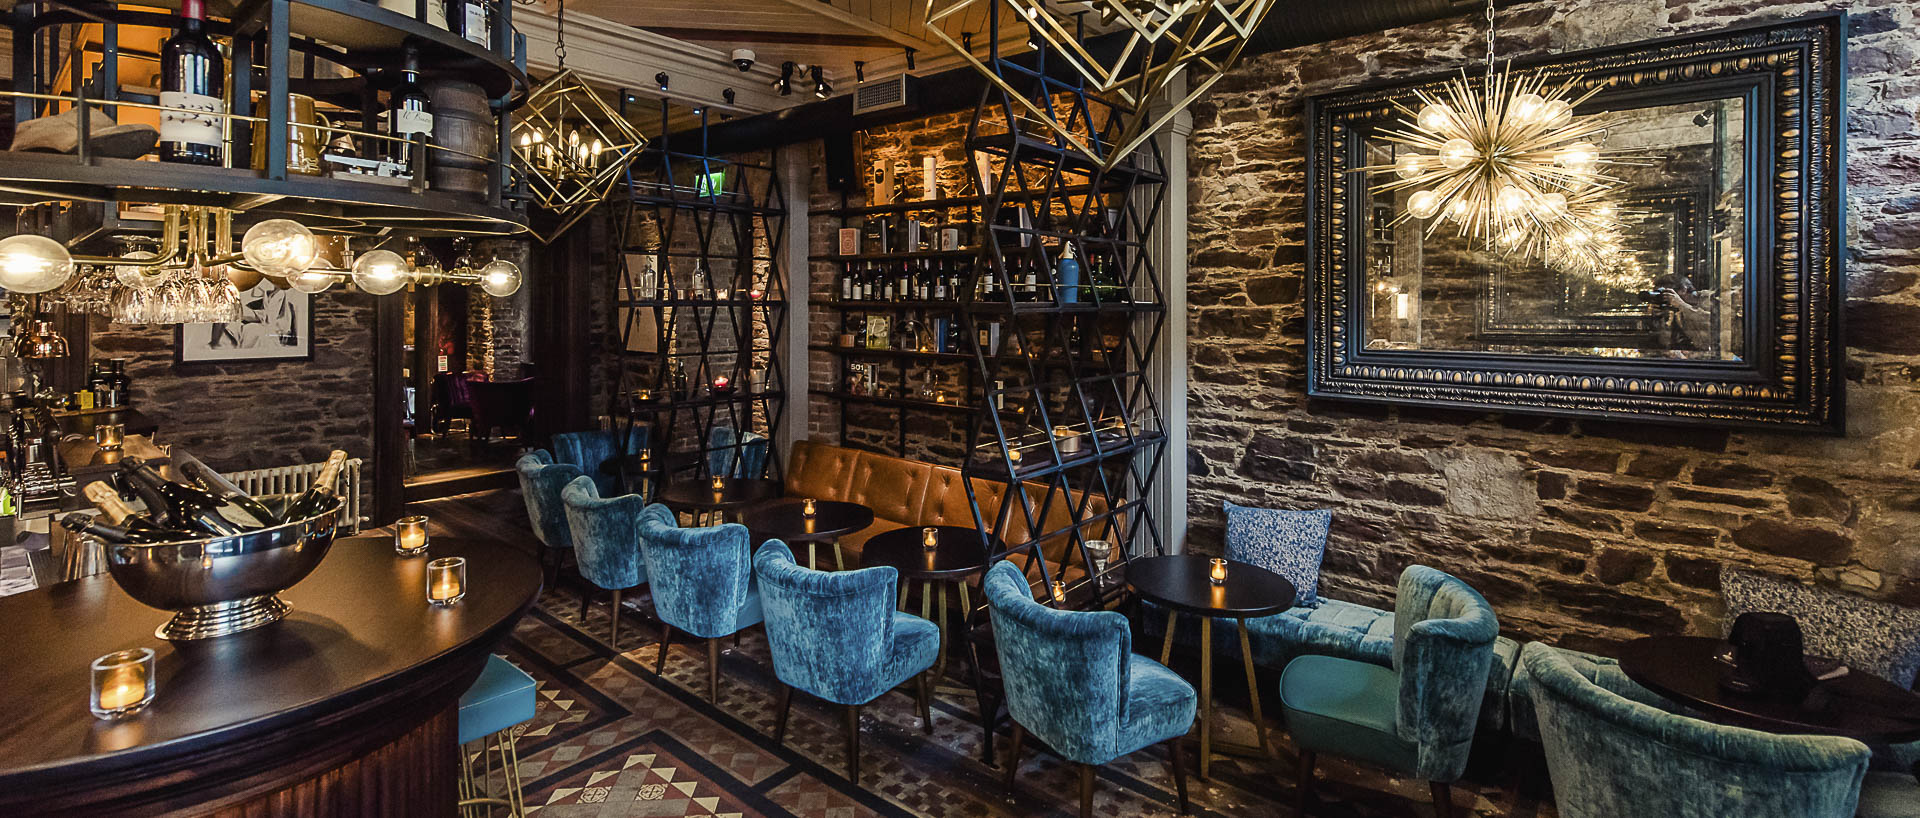 Cask_Bar_at_Hotel_Isaacs_Cork_with_bright_vintage_decor